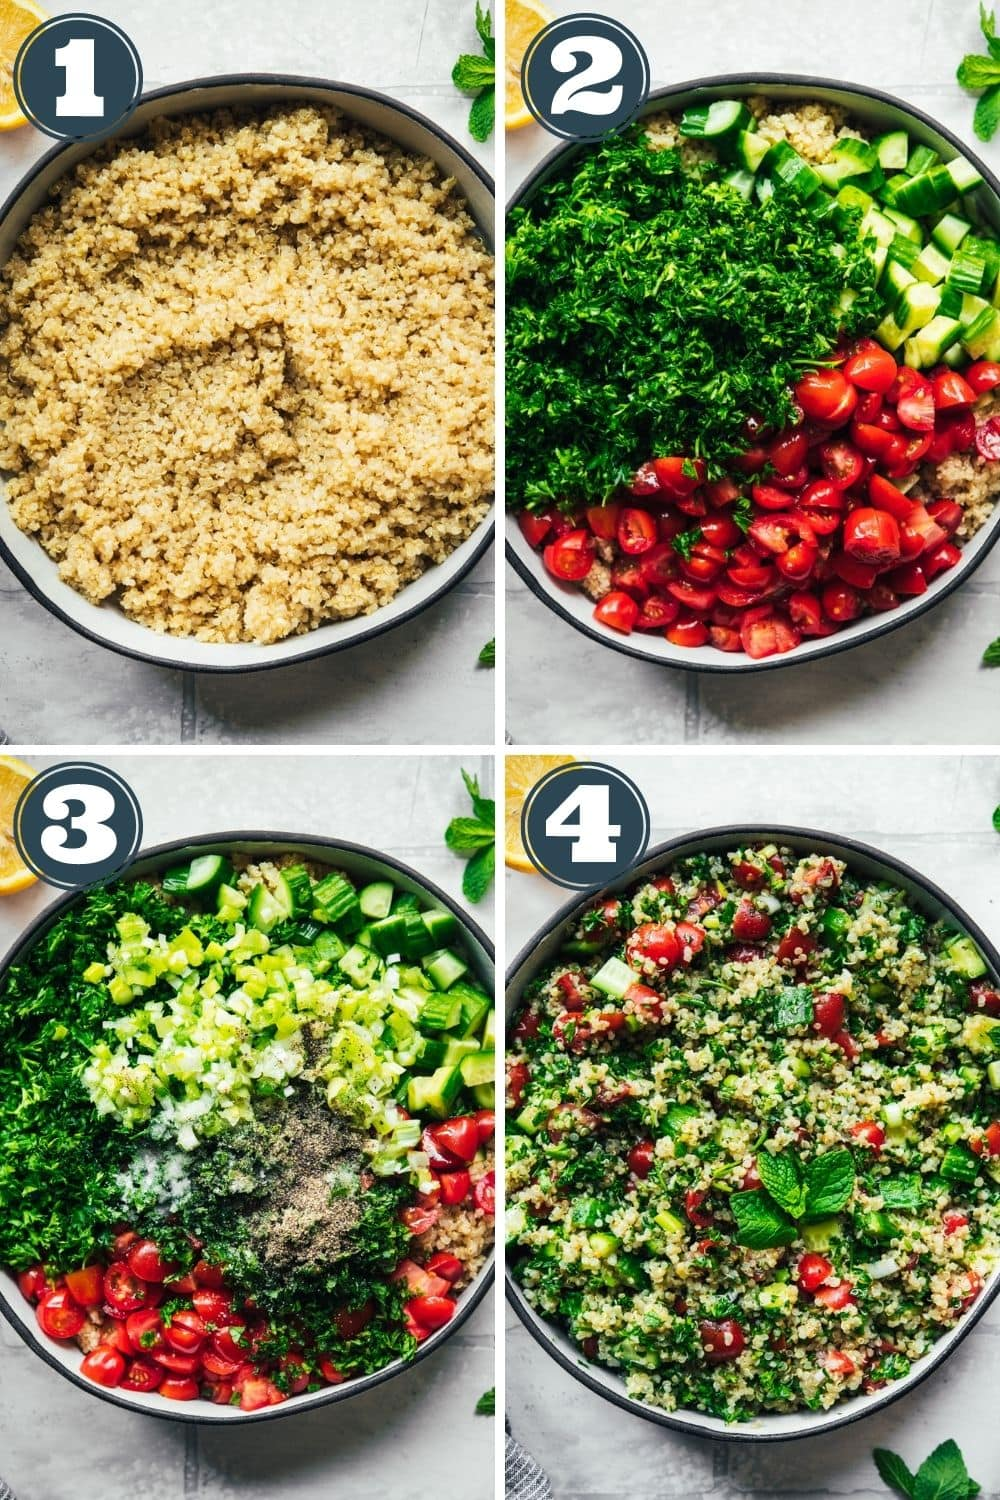 How to assemble a quinoa tabbouleh salad in 4 steps.